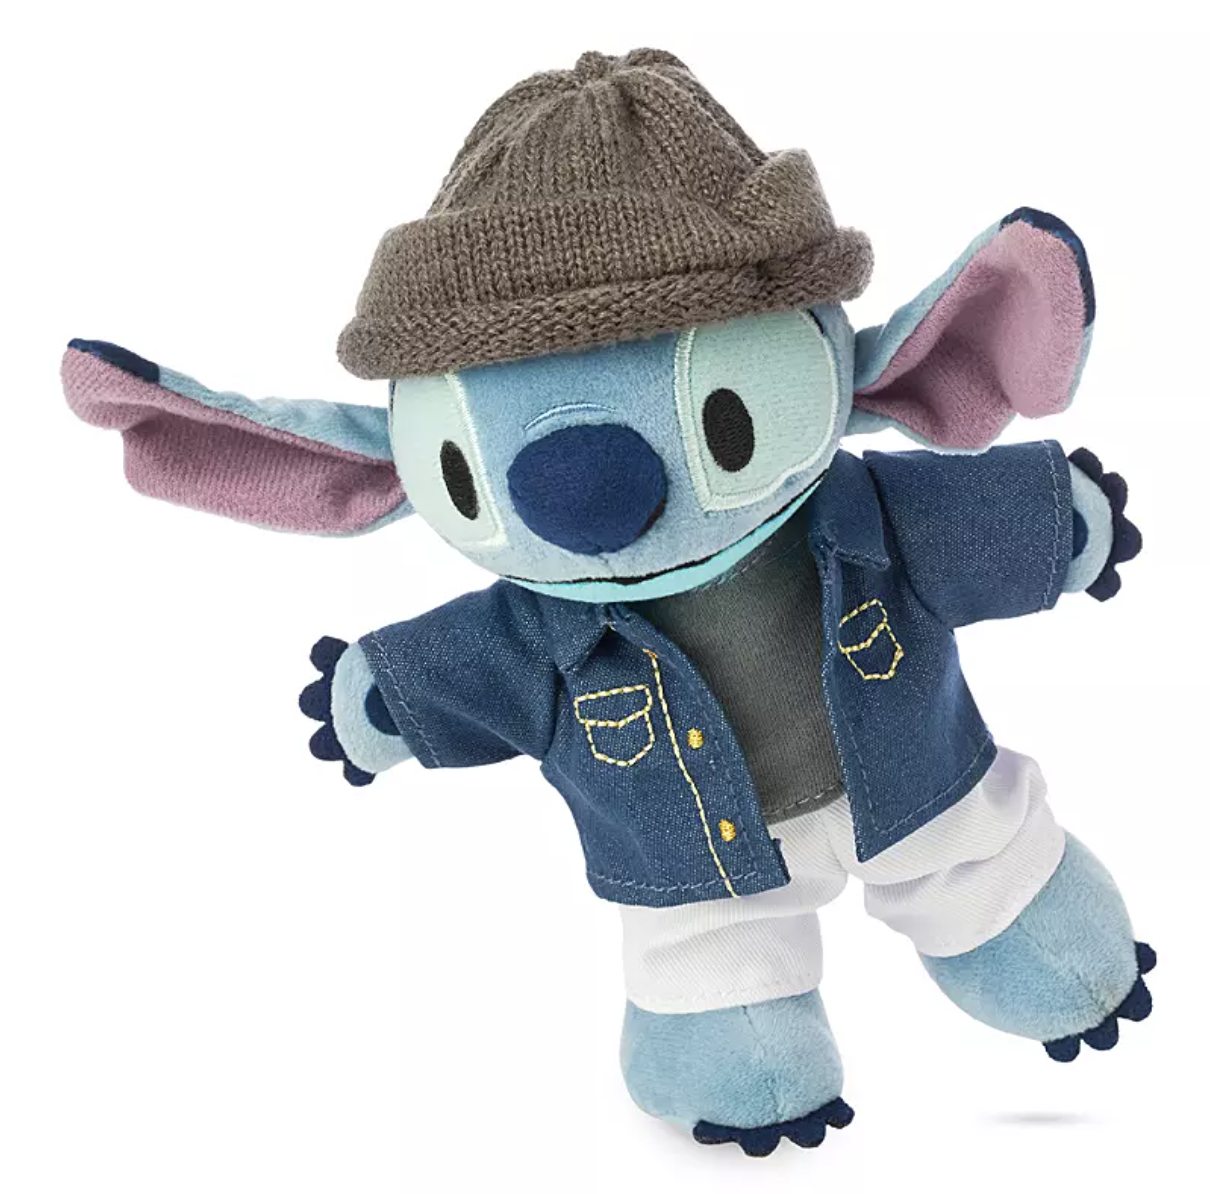 a stitch doll wearing a denim jacket and beanie